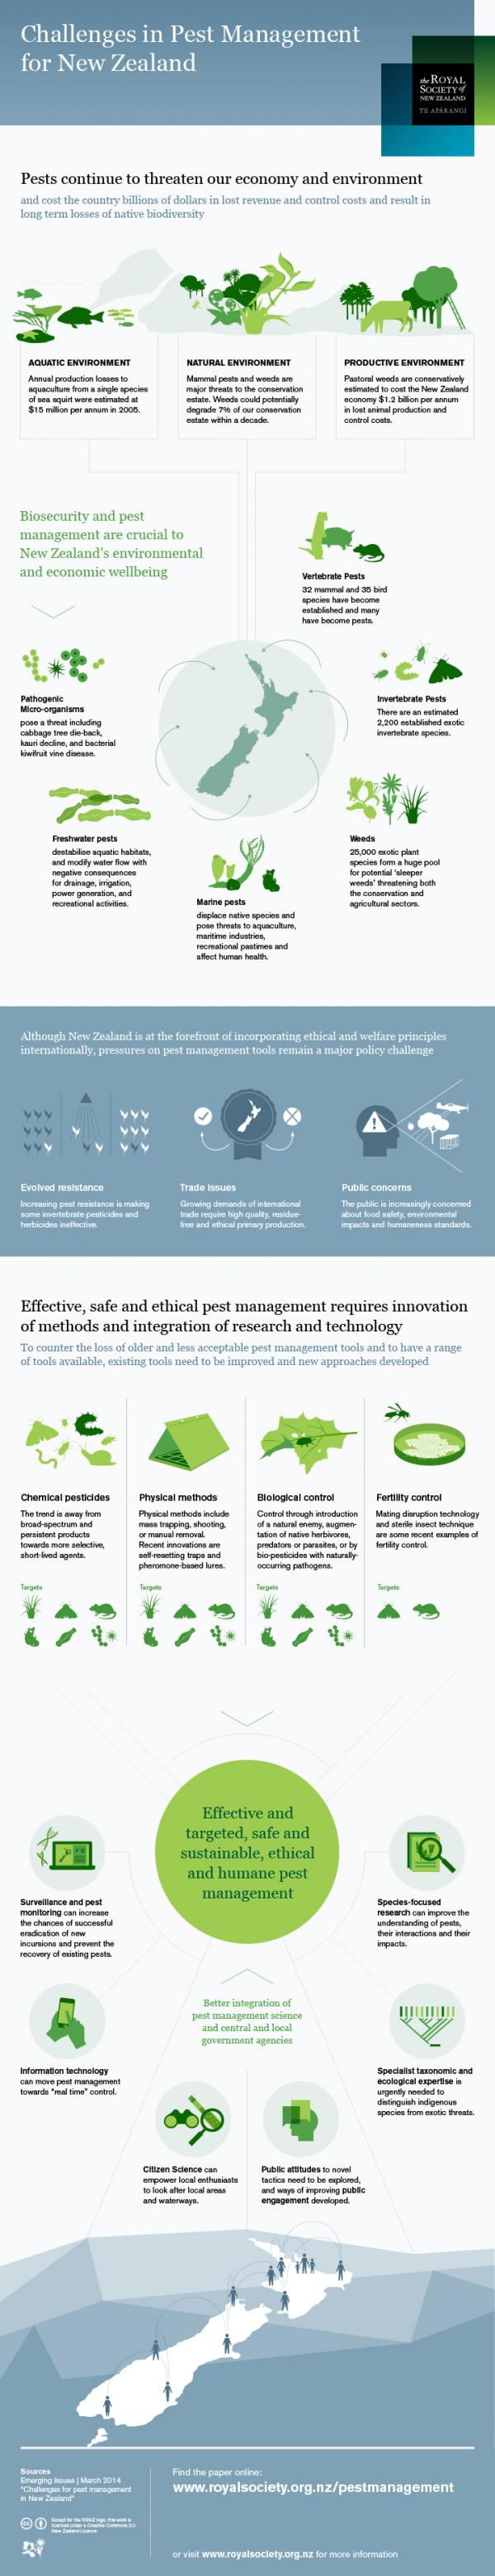 Pest management infographic RSNZ